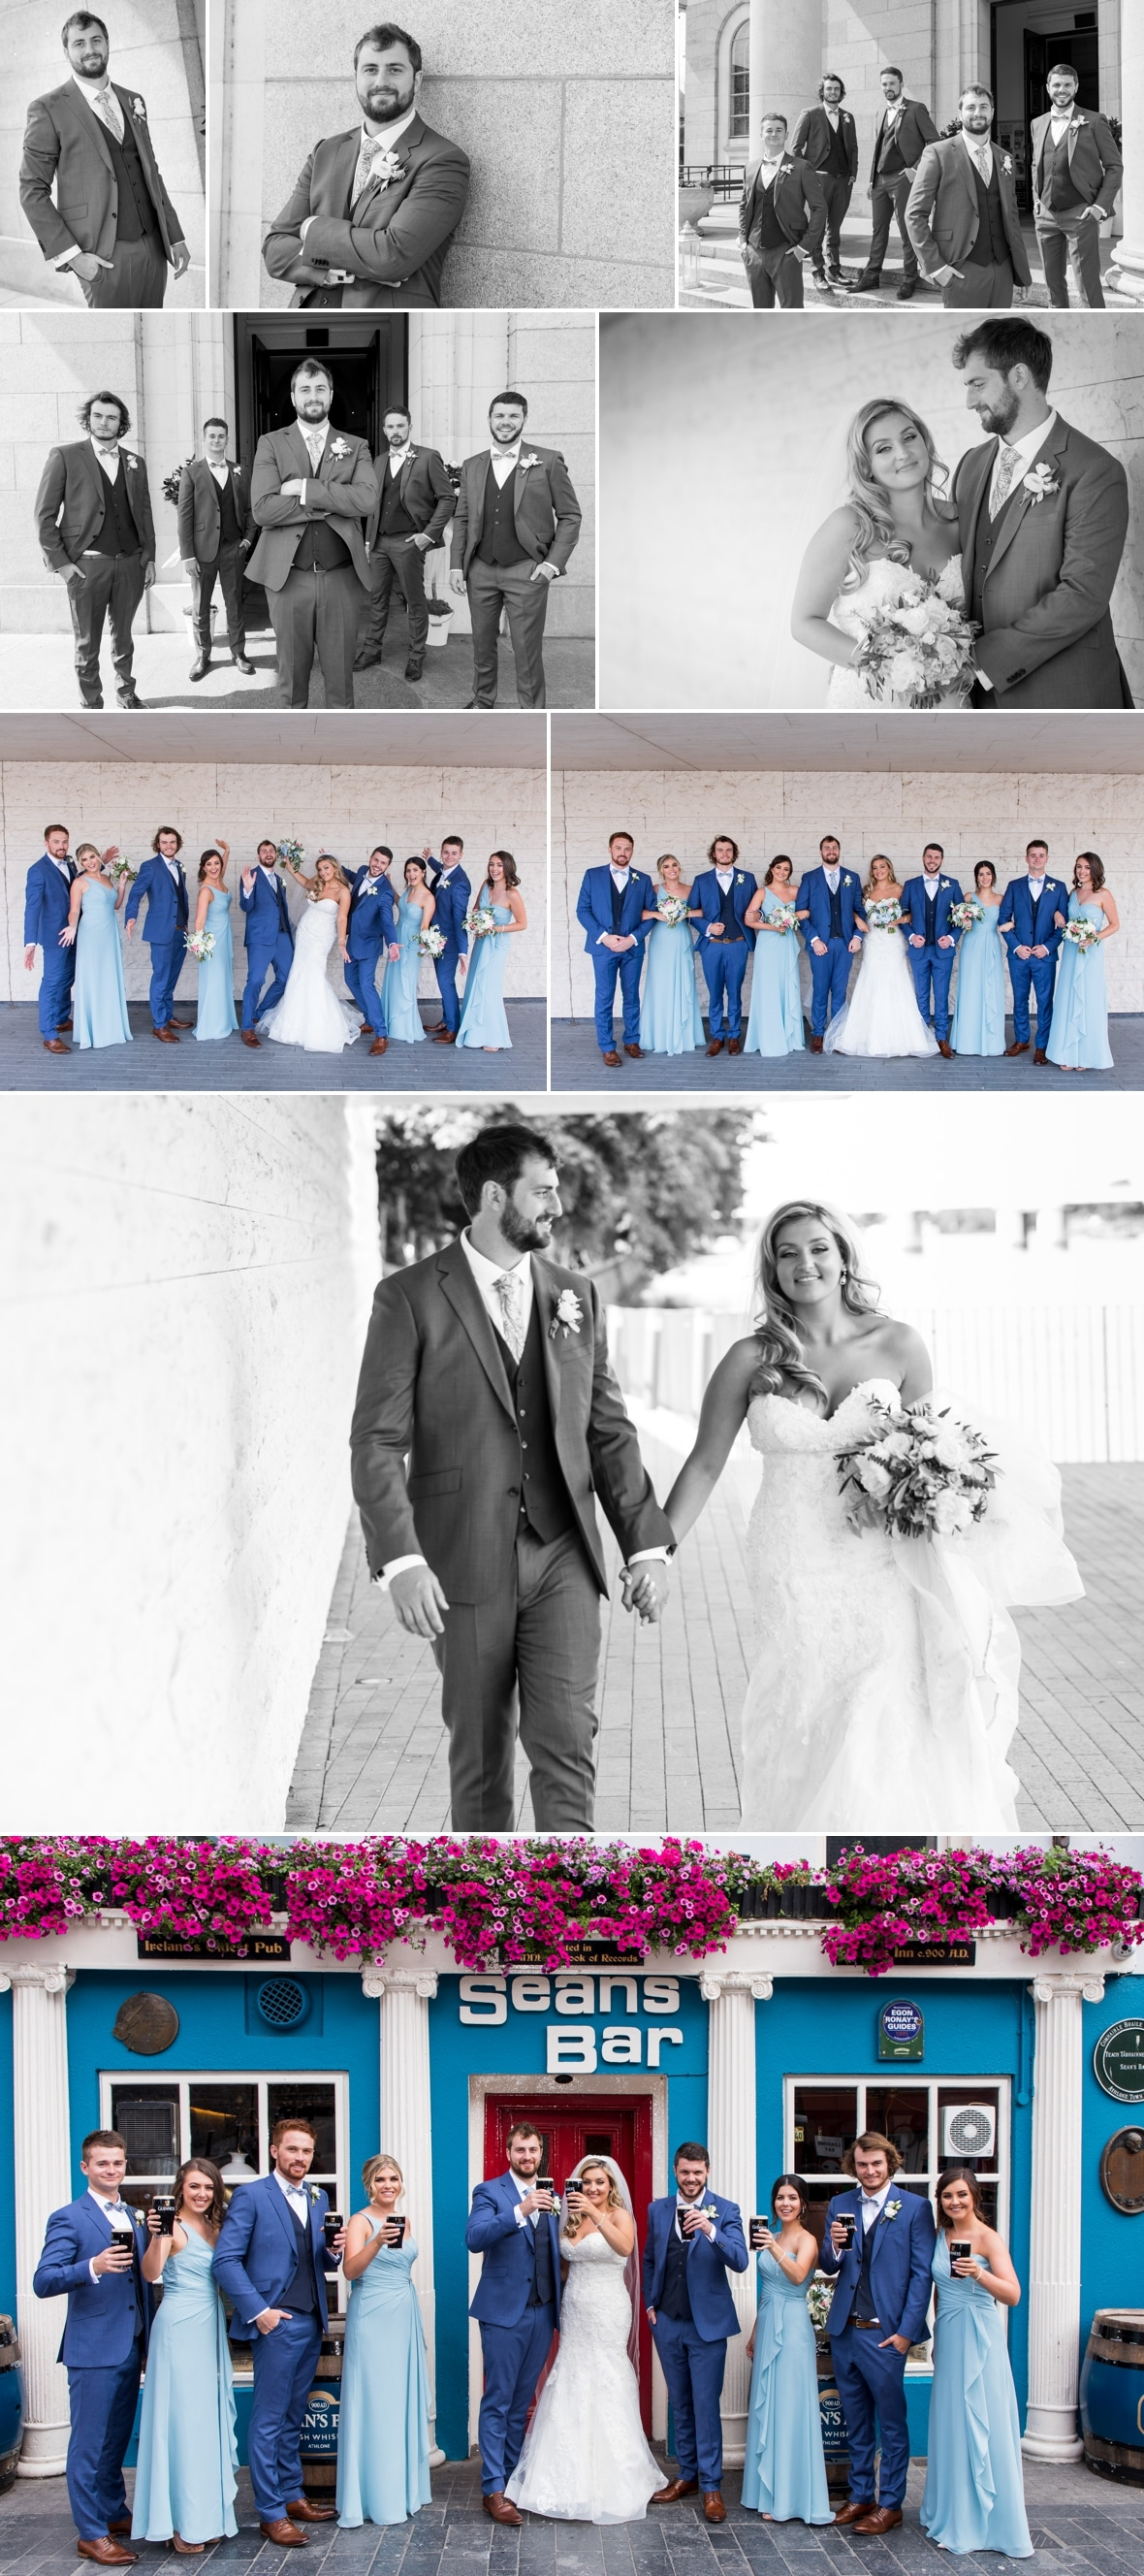 Summer Wedding of Sarah and Torin in Athlone